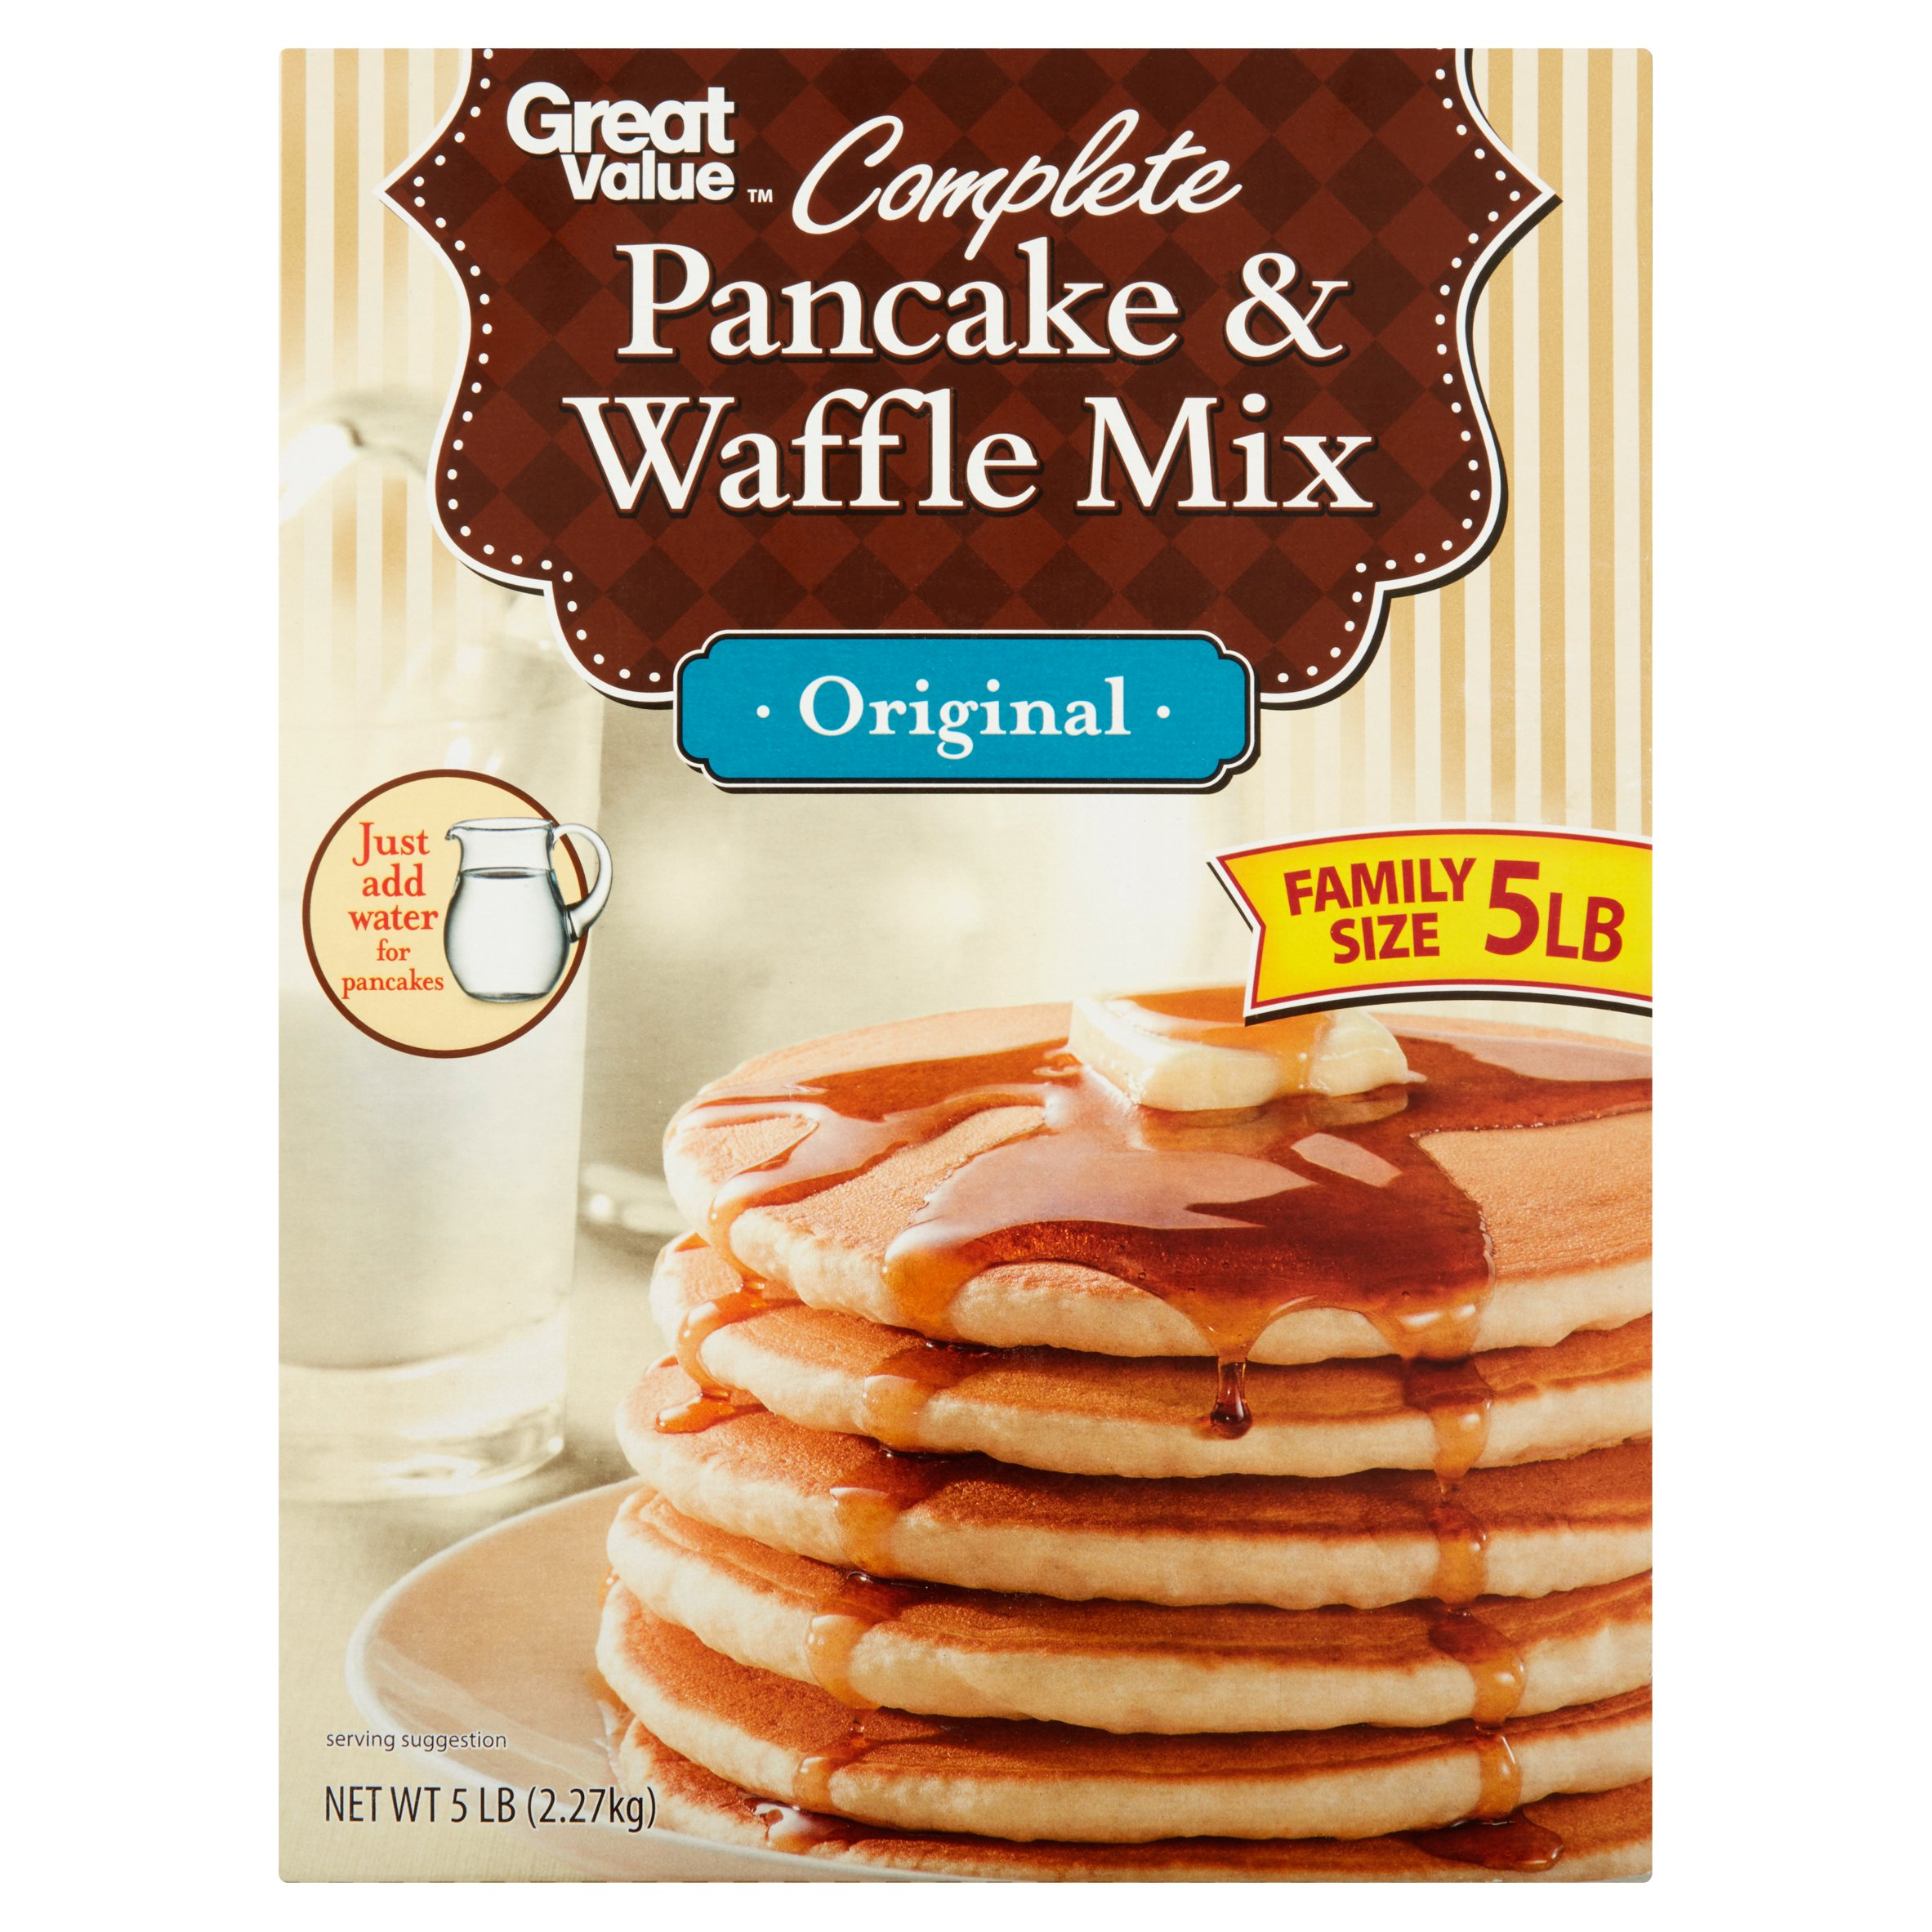 Great Value Complete Original Pancake & Waffle Mix Family Size, 5 lb